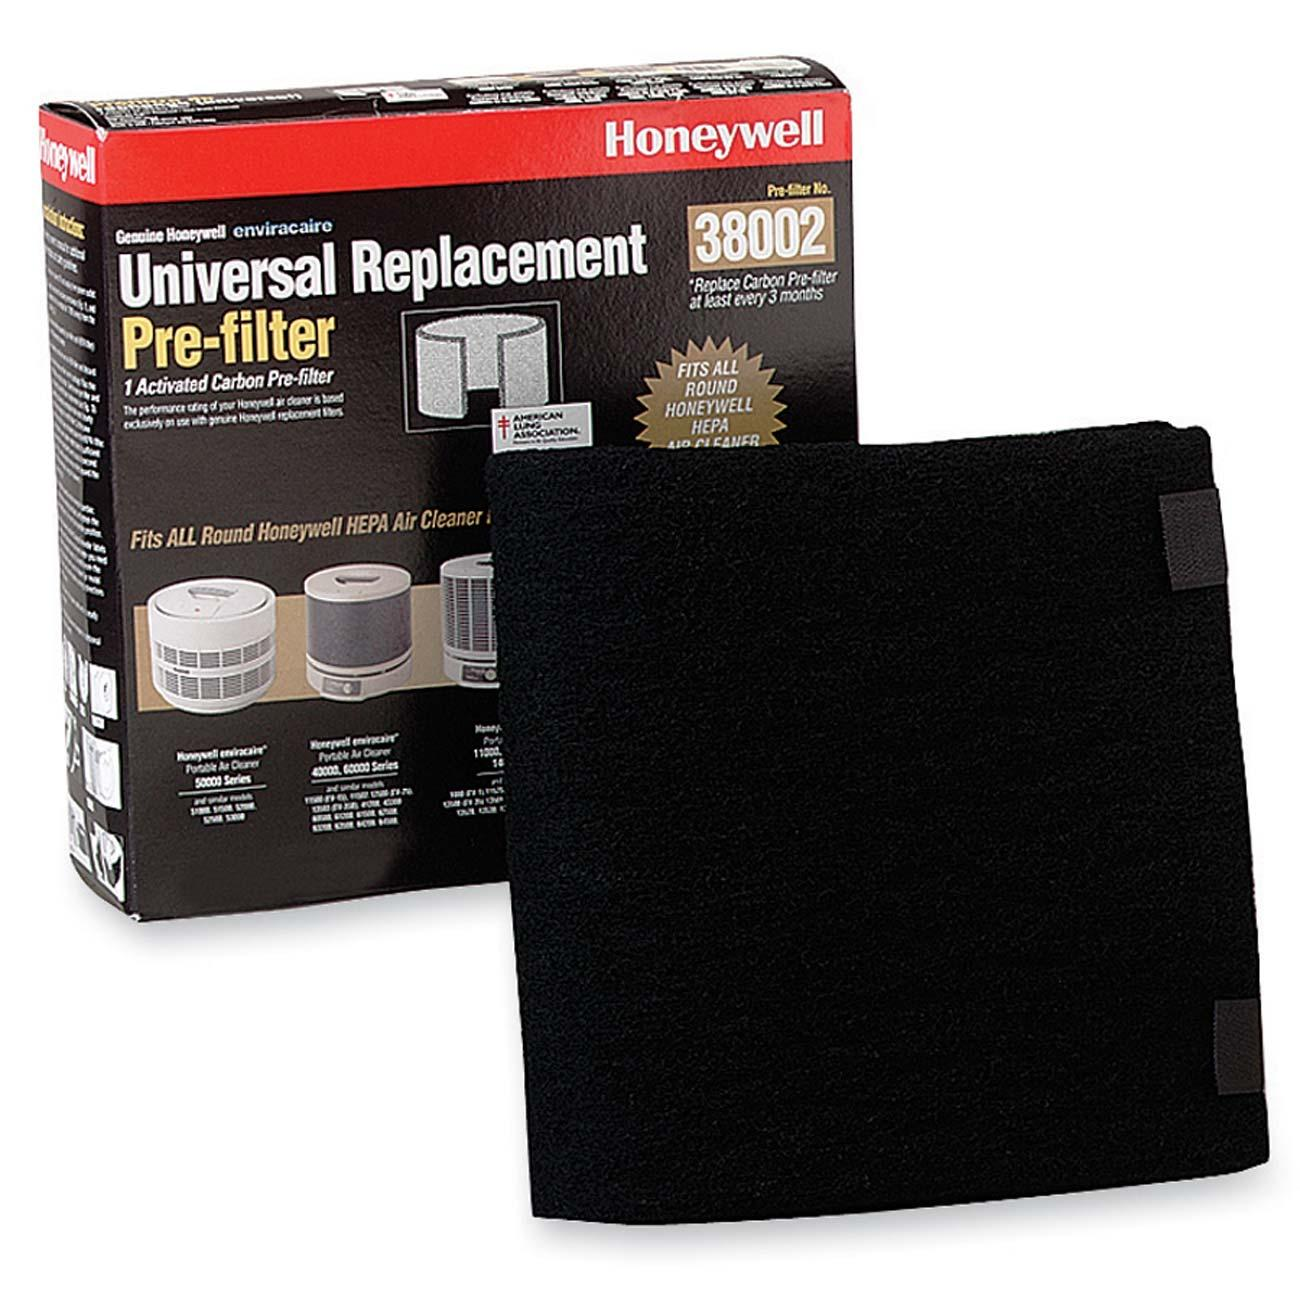 Honeywell, HWLHRFAP1, Universal HEPA Replacement Filter, 1